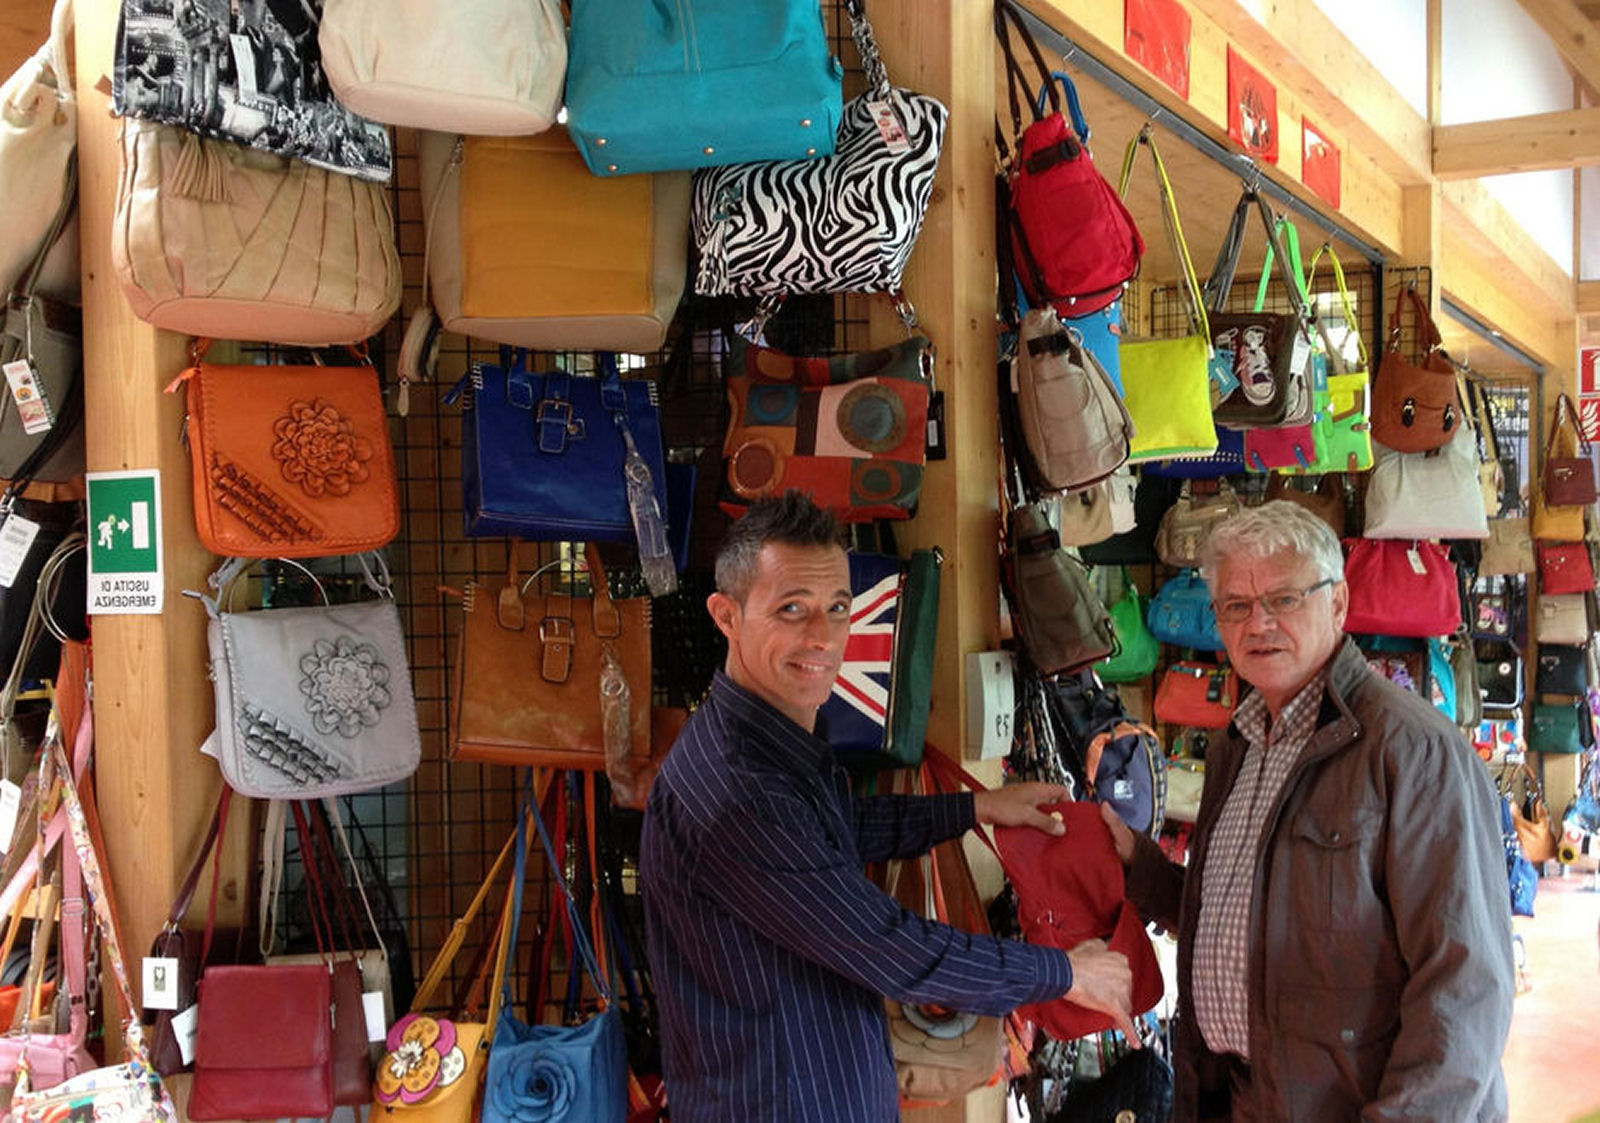 tarvisio-open-air-leather-market-02-italy